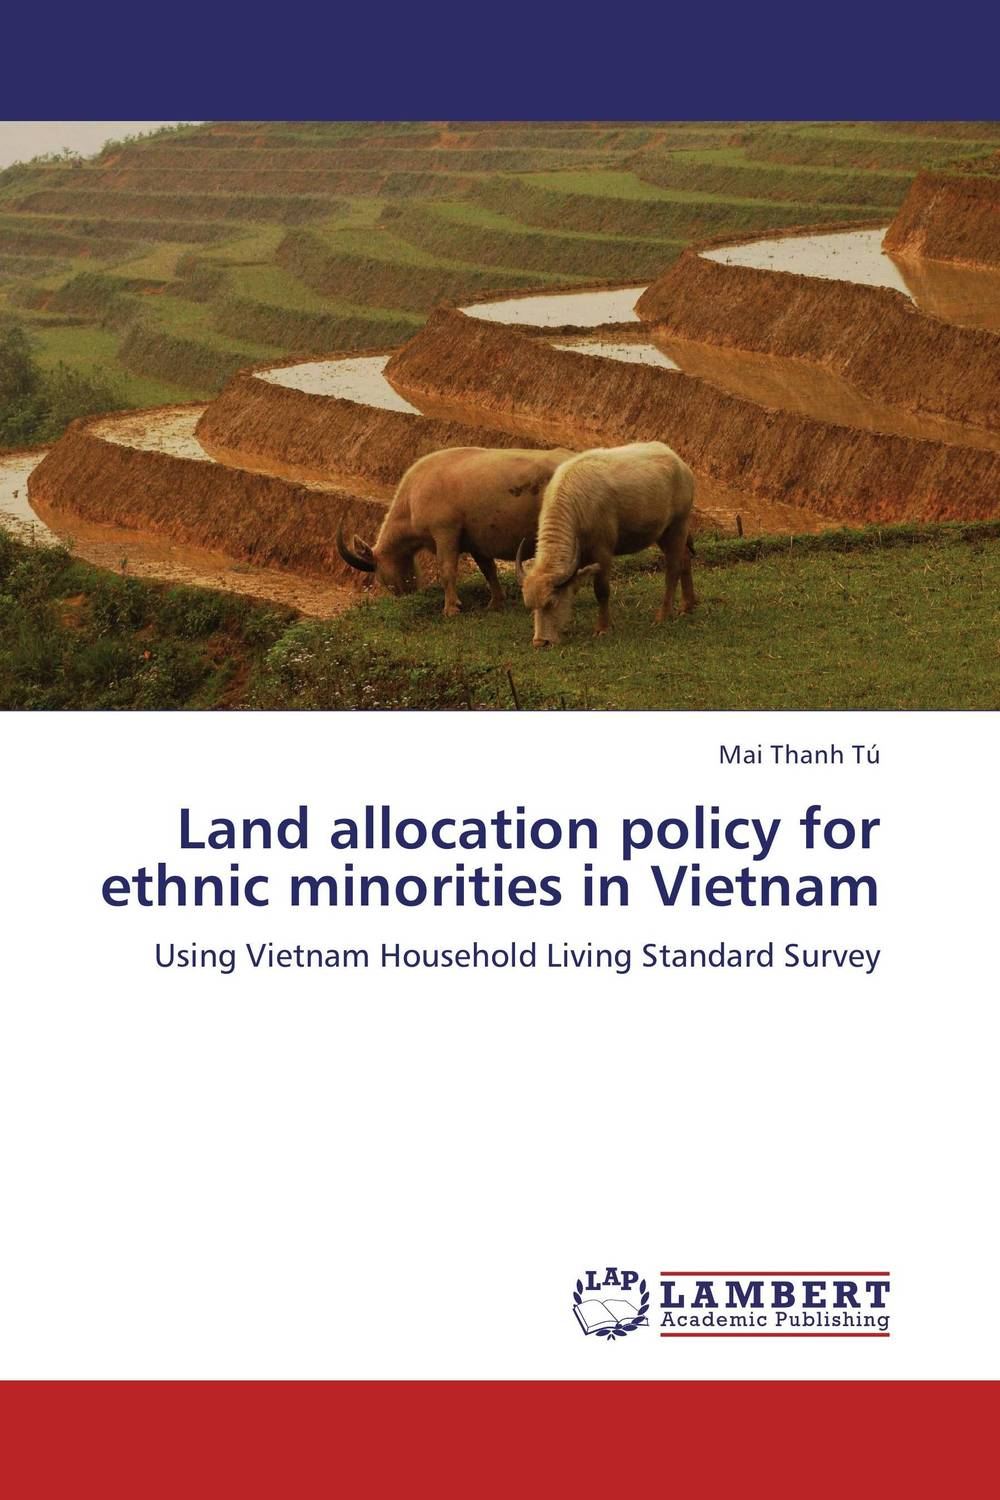 Land allocation policy for ethnic minorities in Vietnam